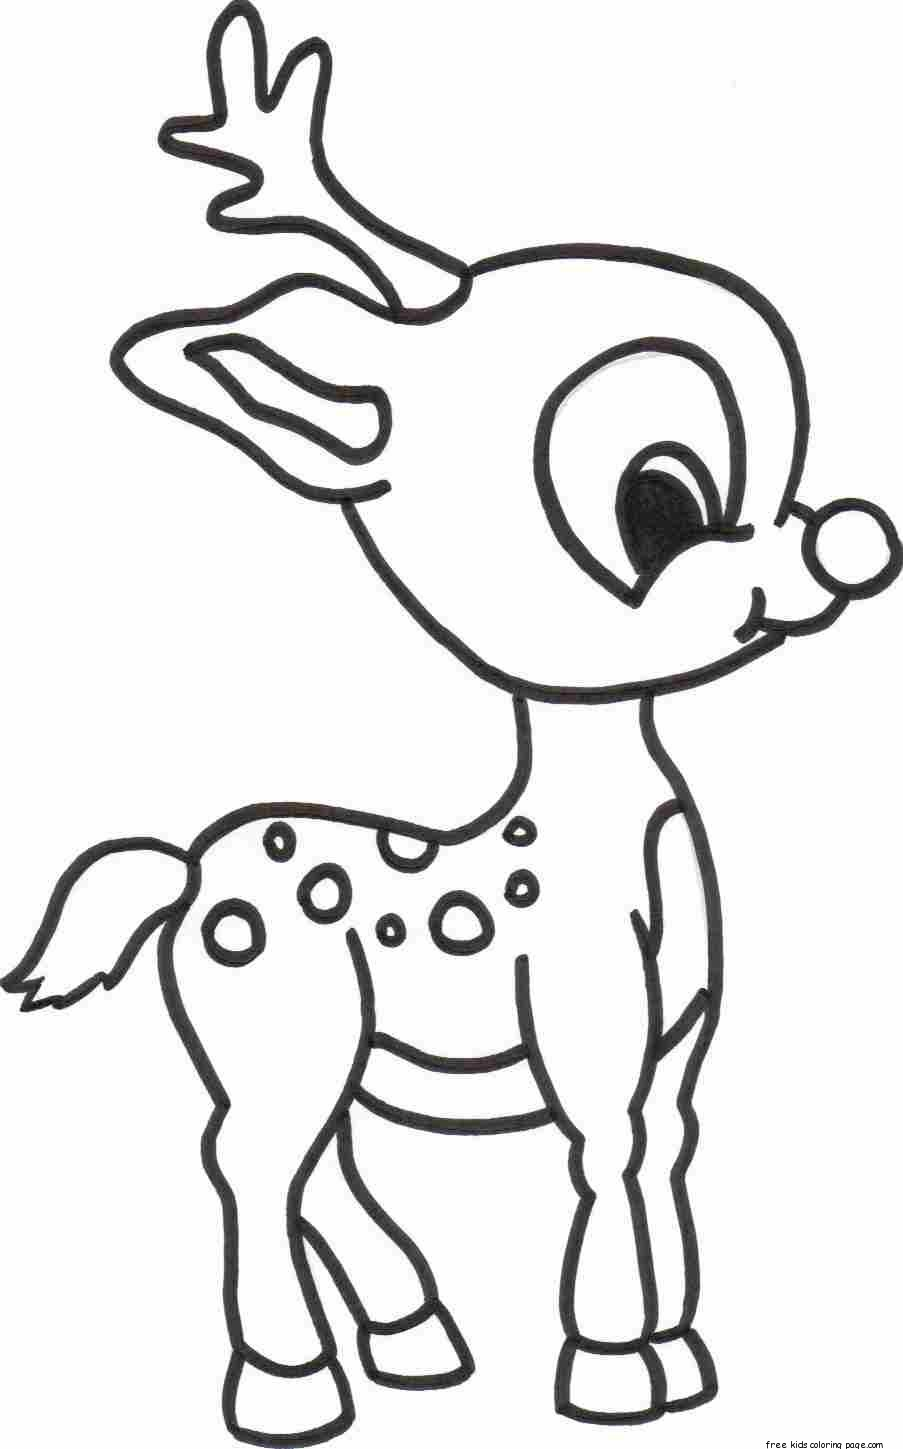 Kids coloring pages free printable coloring pages ~ Christmas Baby Reindeer Printable Coloring pages for ...